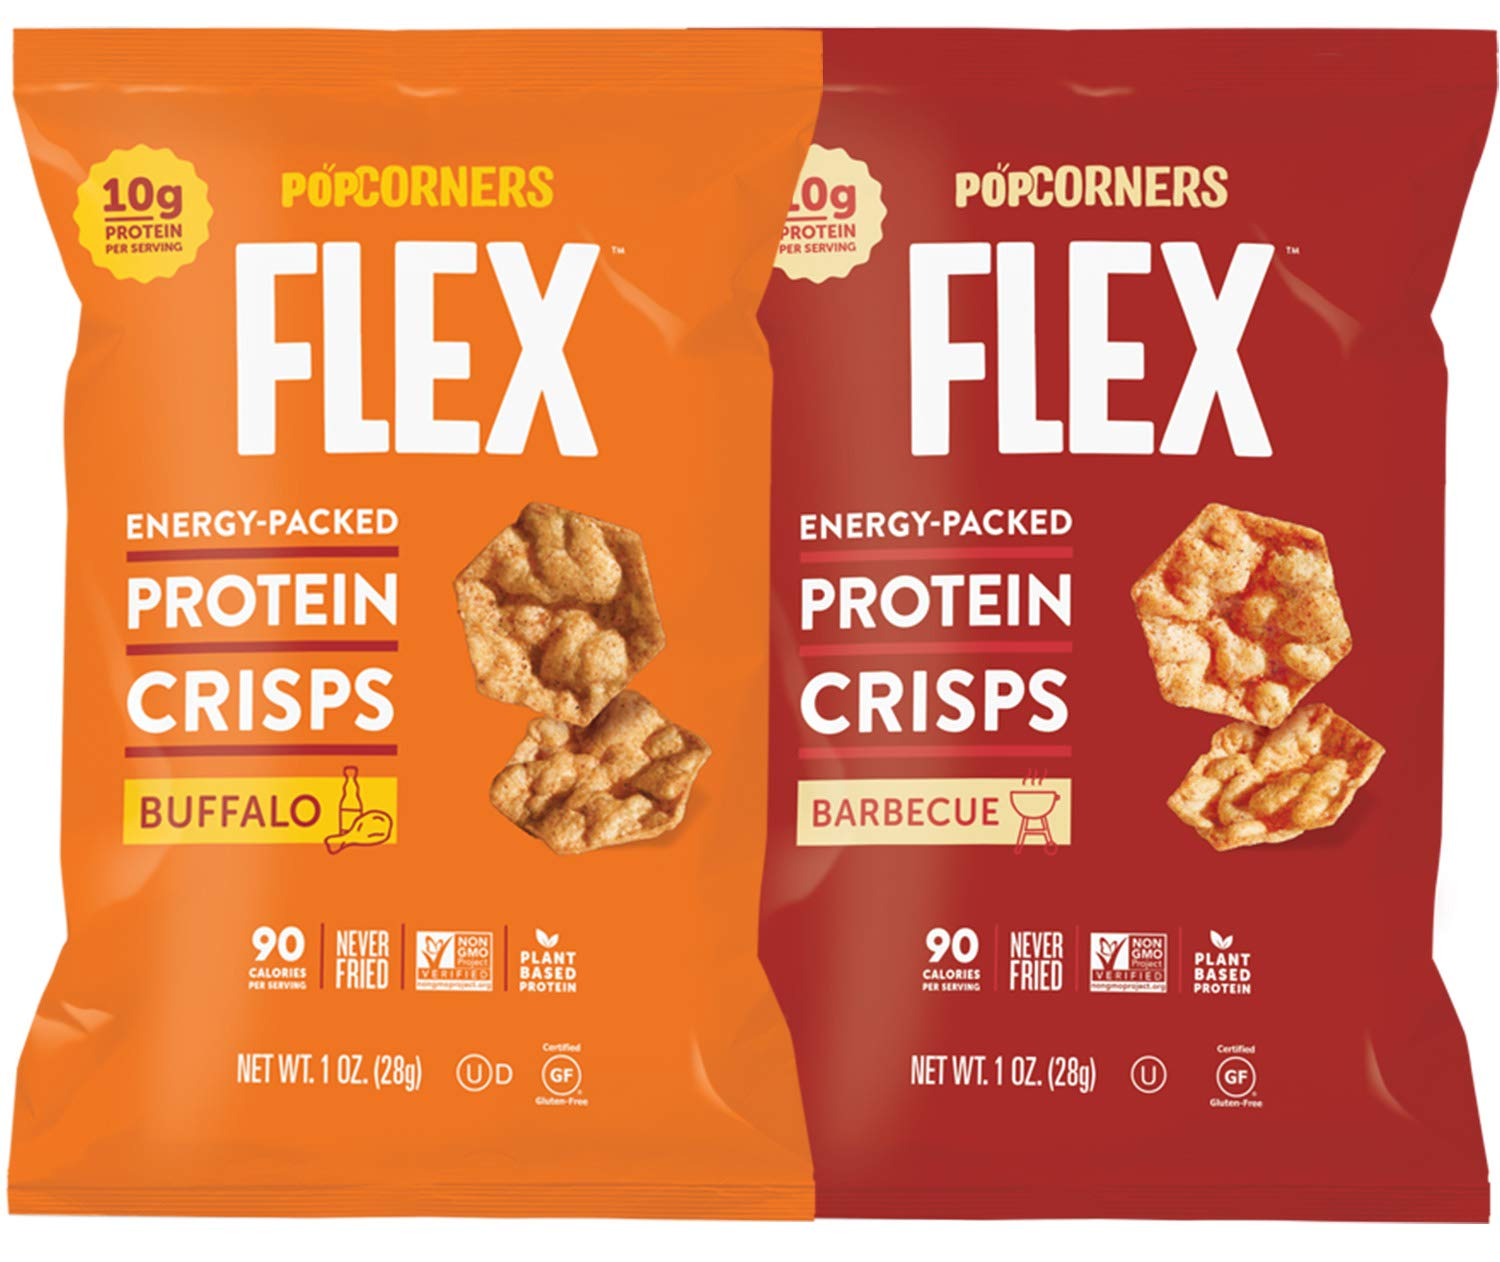 Protein Chips Variety Mix Sampler, Popped Protein Crisps, Hot Buffalo and Sweet & Smokey BBQ Flavored, Non-GMO and Certified Gluten Free 1.0 oz Bags by Variety Fun (10 Count)